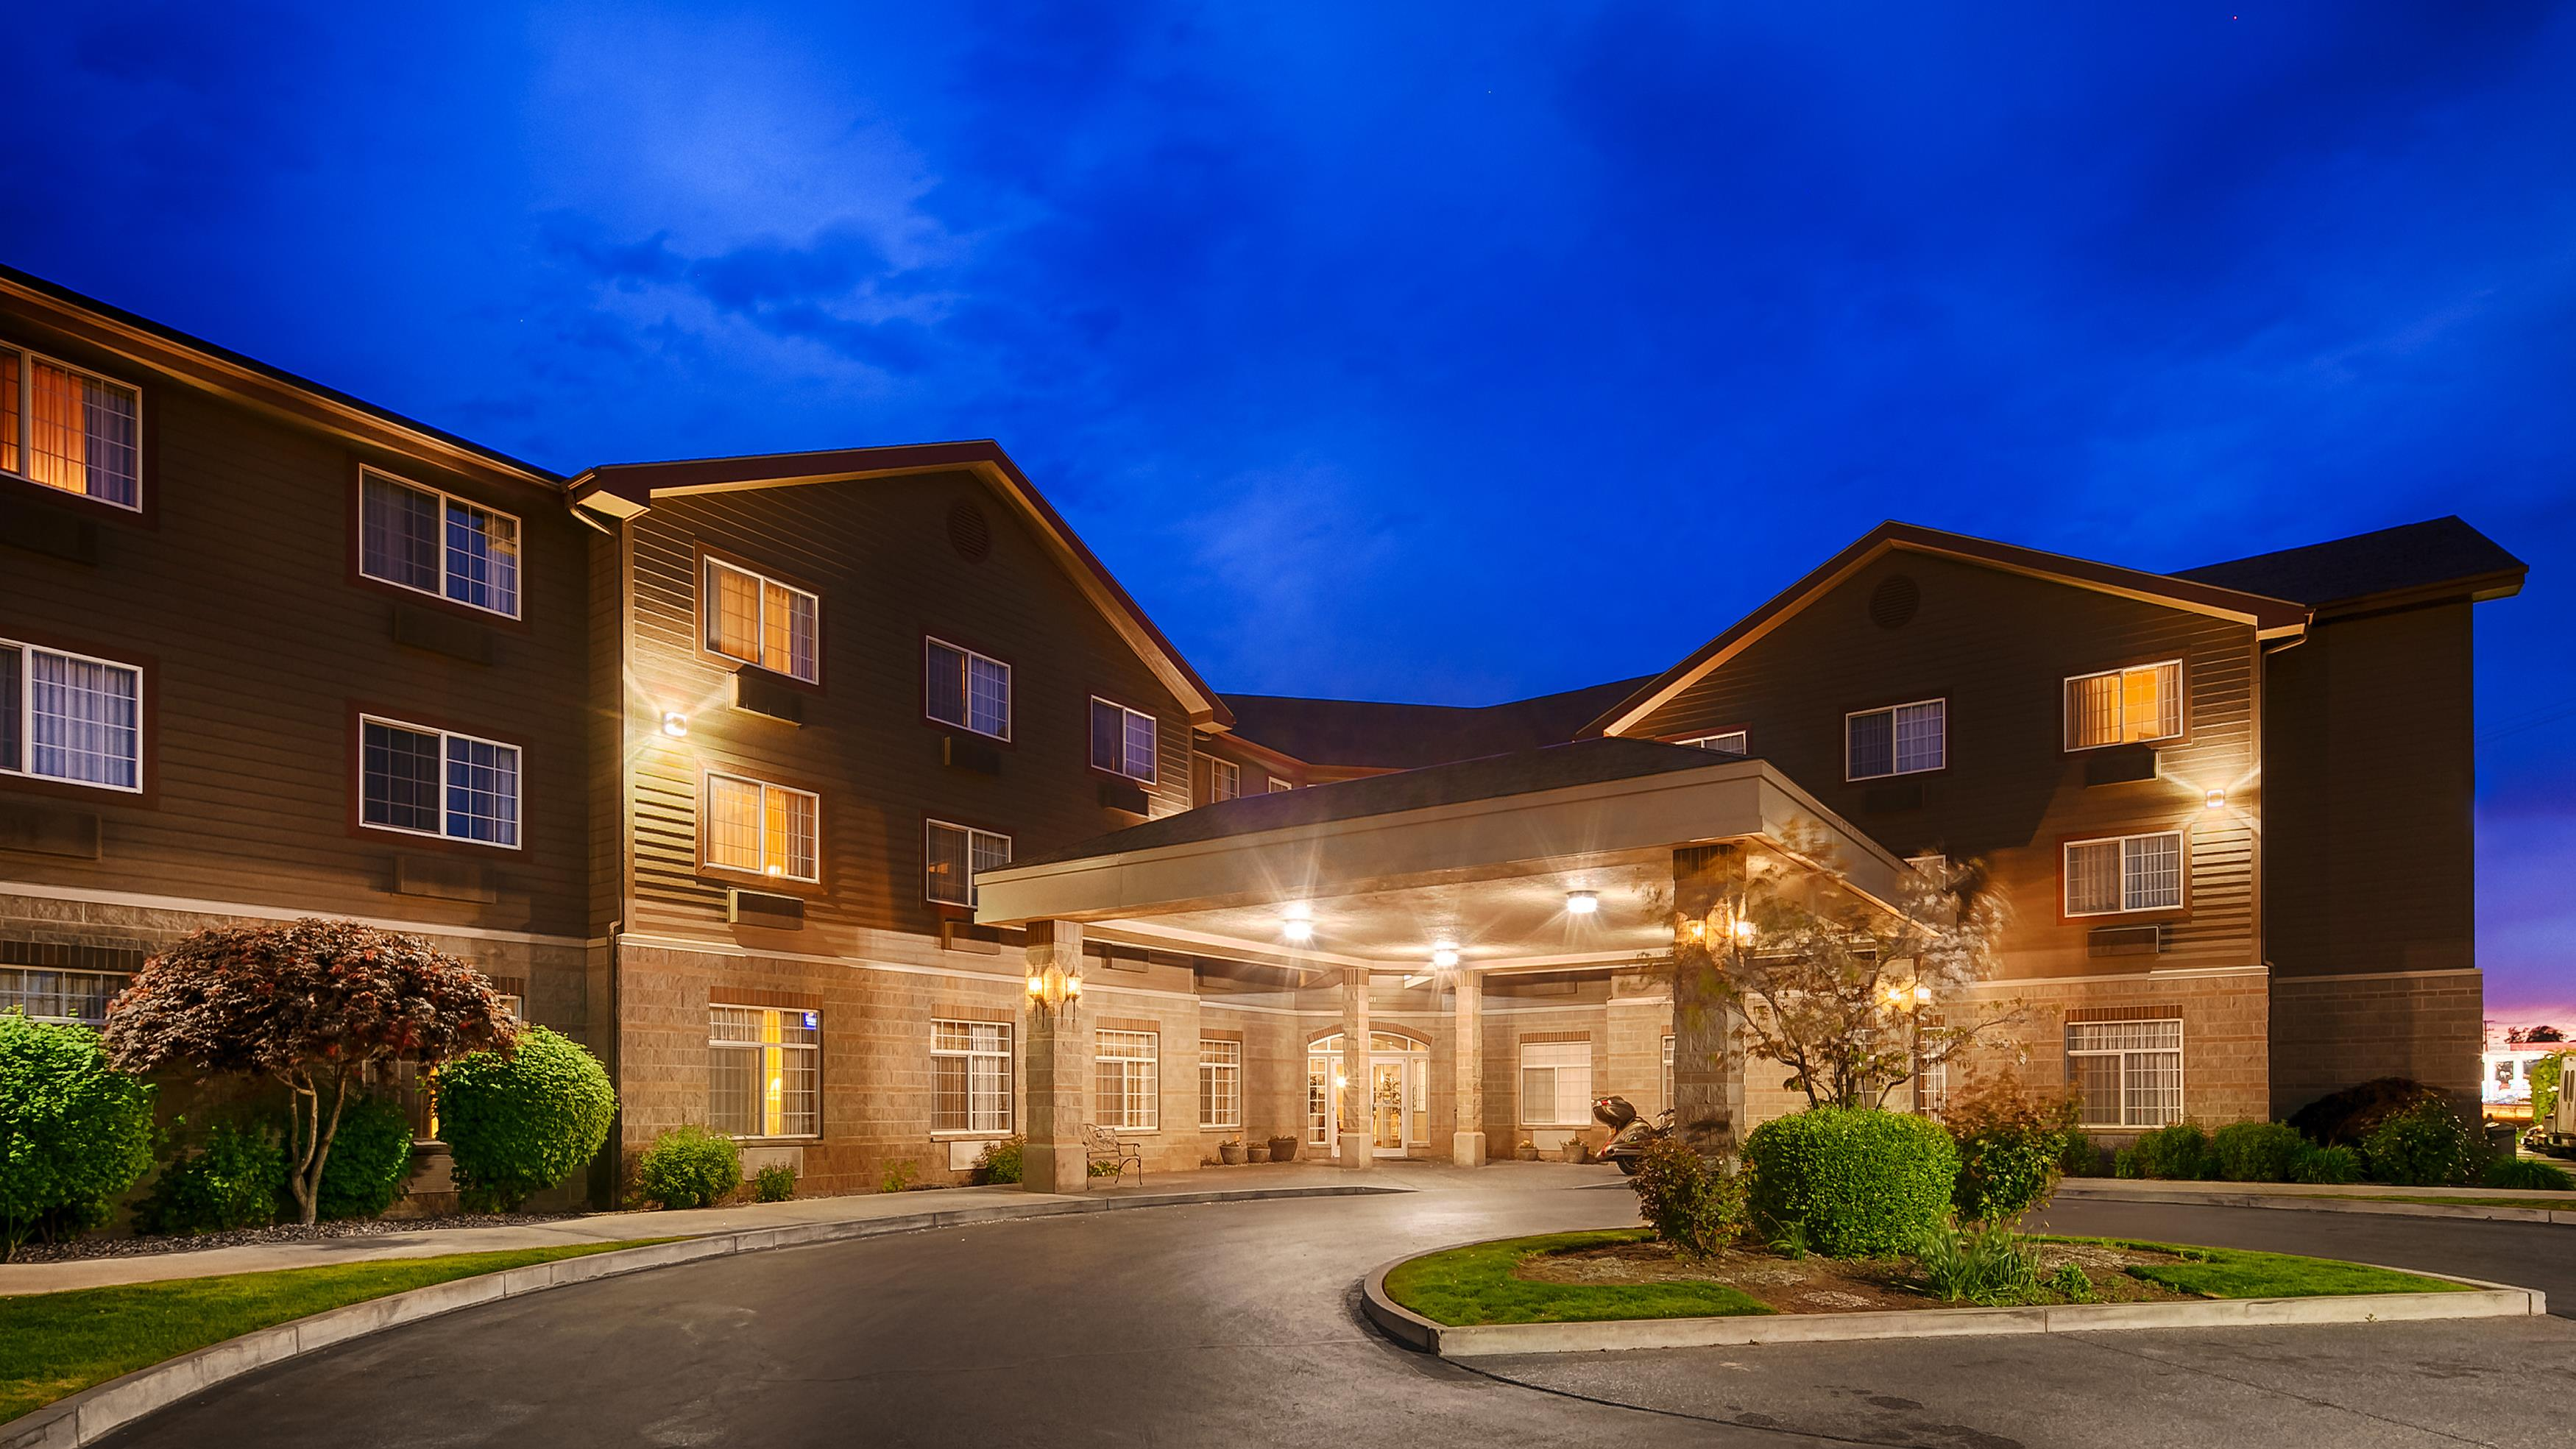 Best Western Plus Kennewick Inn image 0